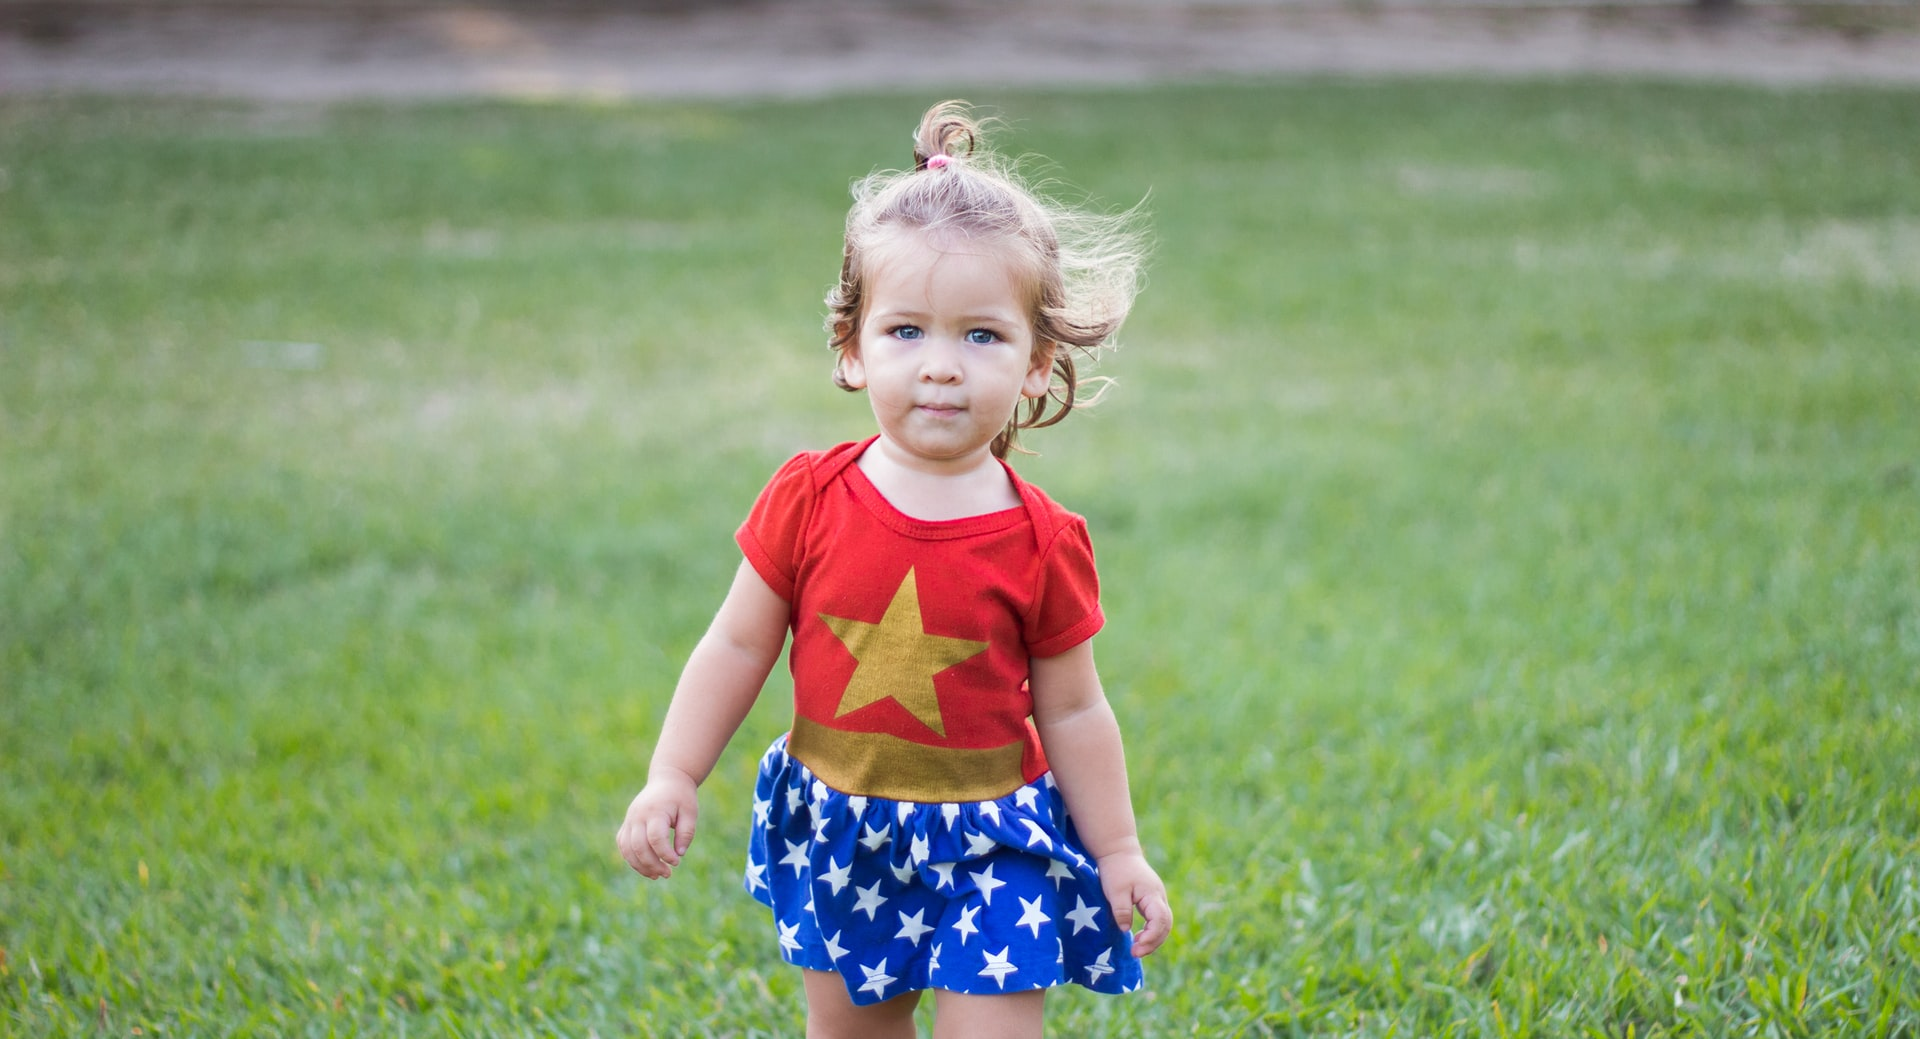 Little girl wearing superhero outfit